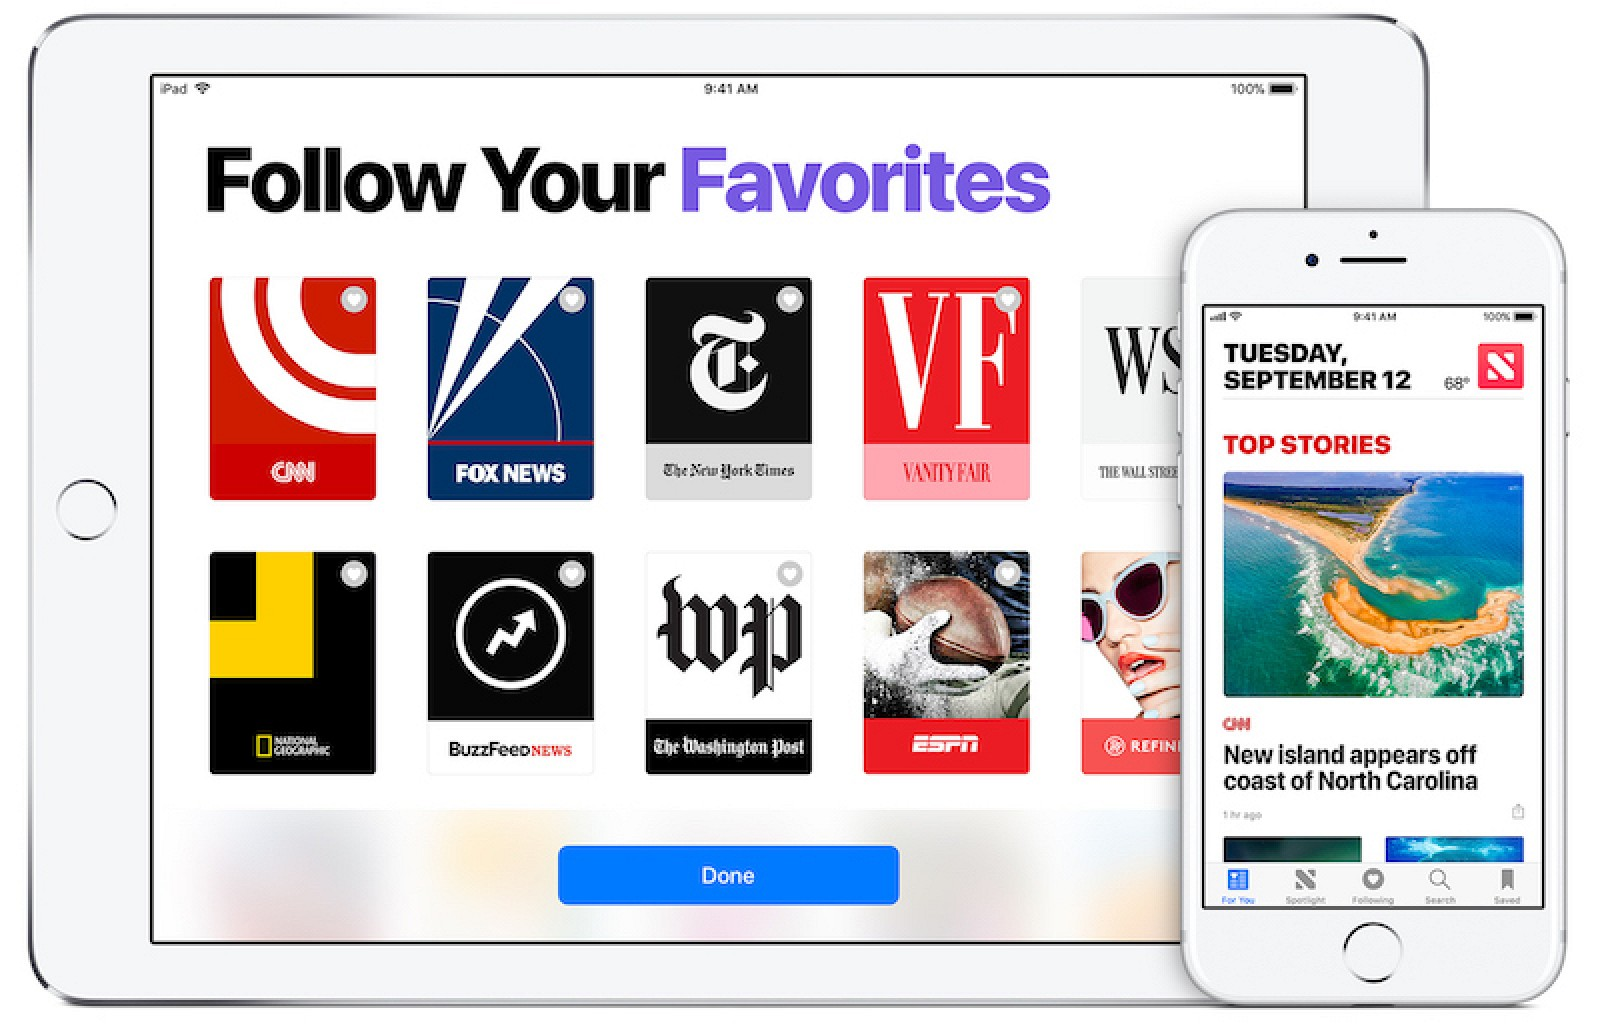 Apple wants to expand in the digital news platform